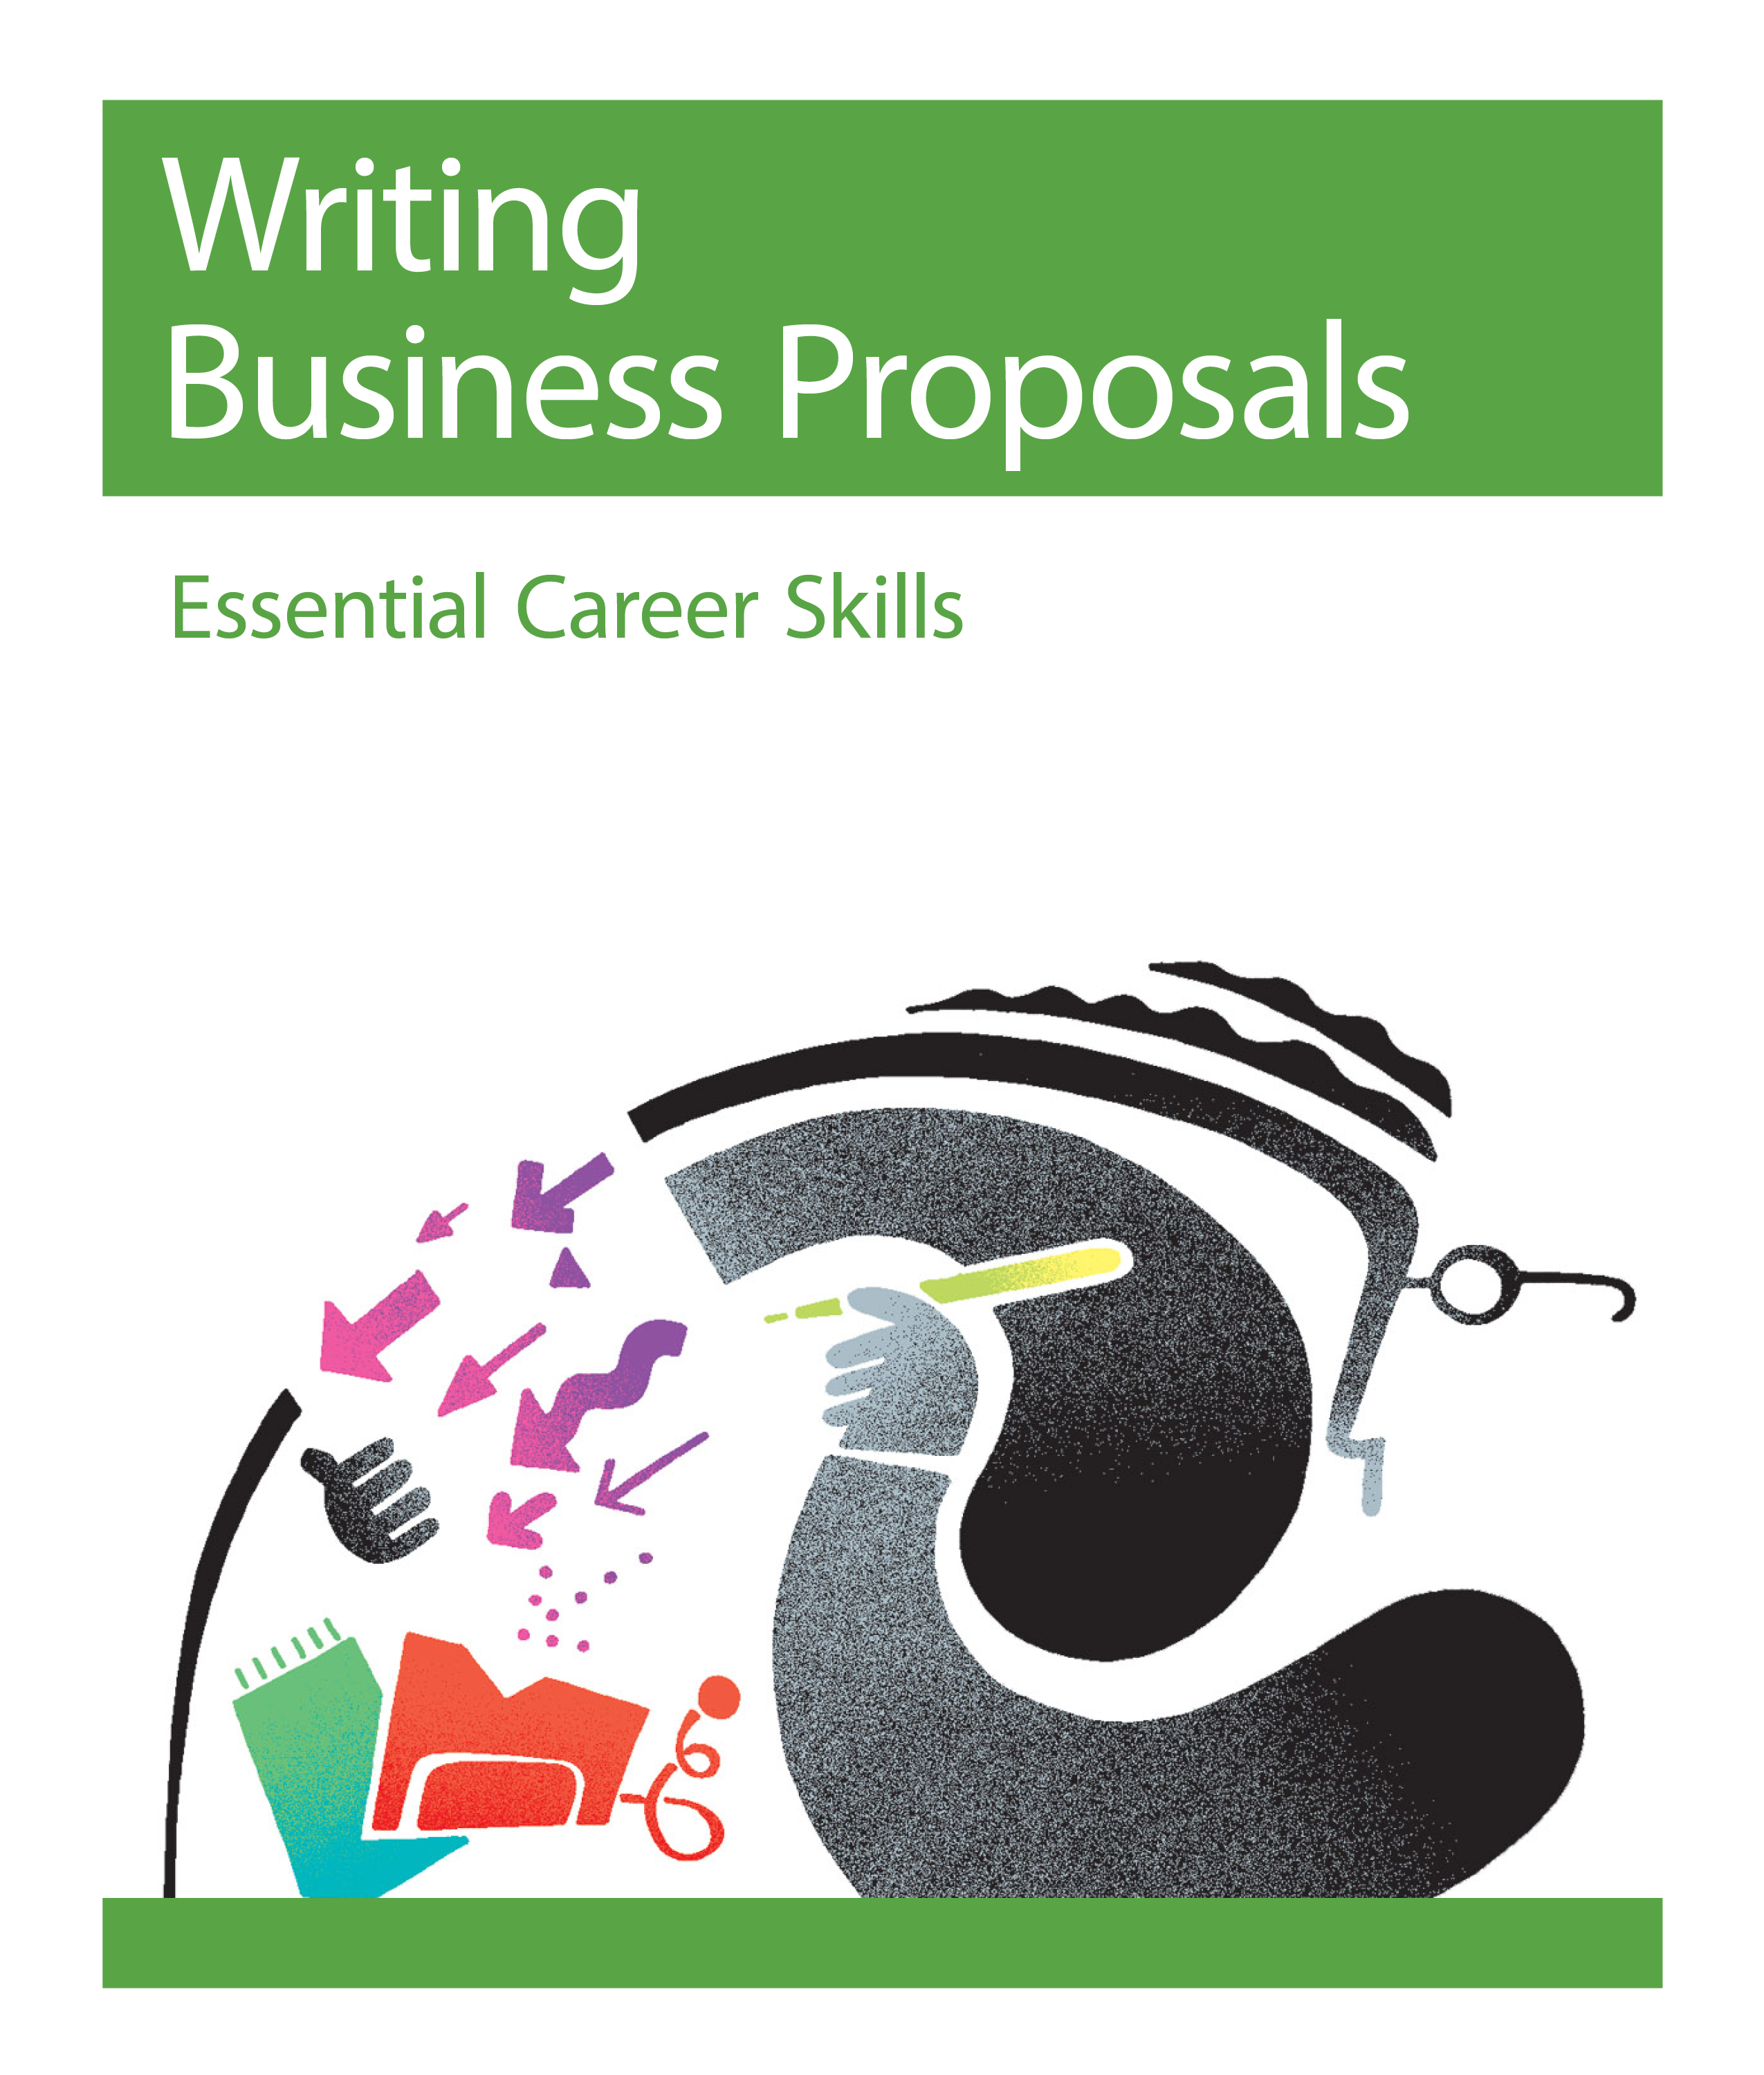 Writing Business Proposals - Facilitator License